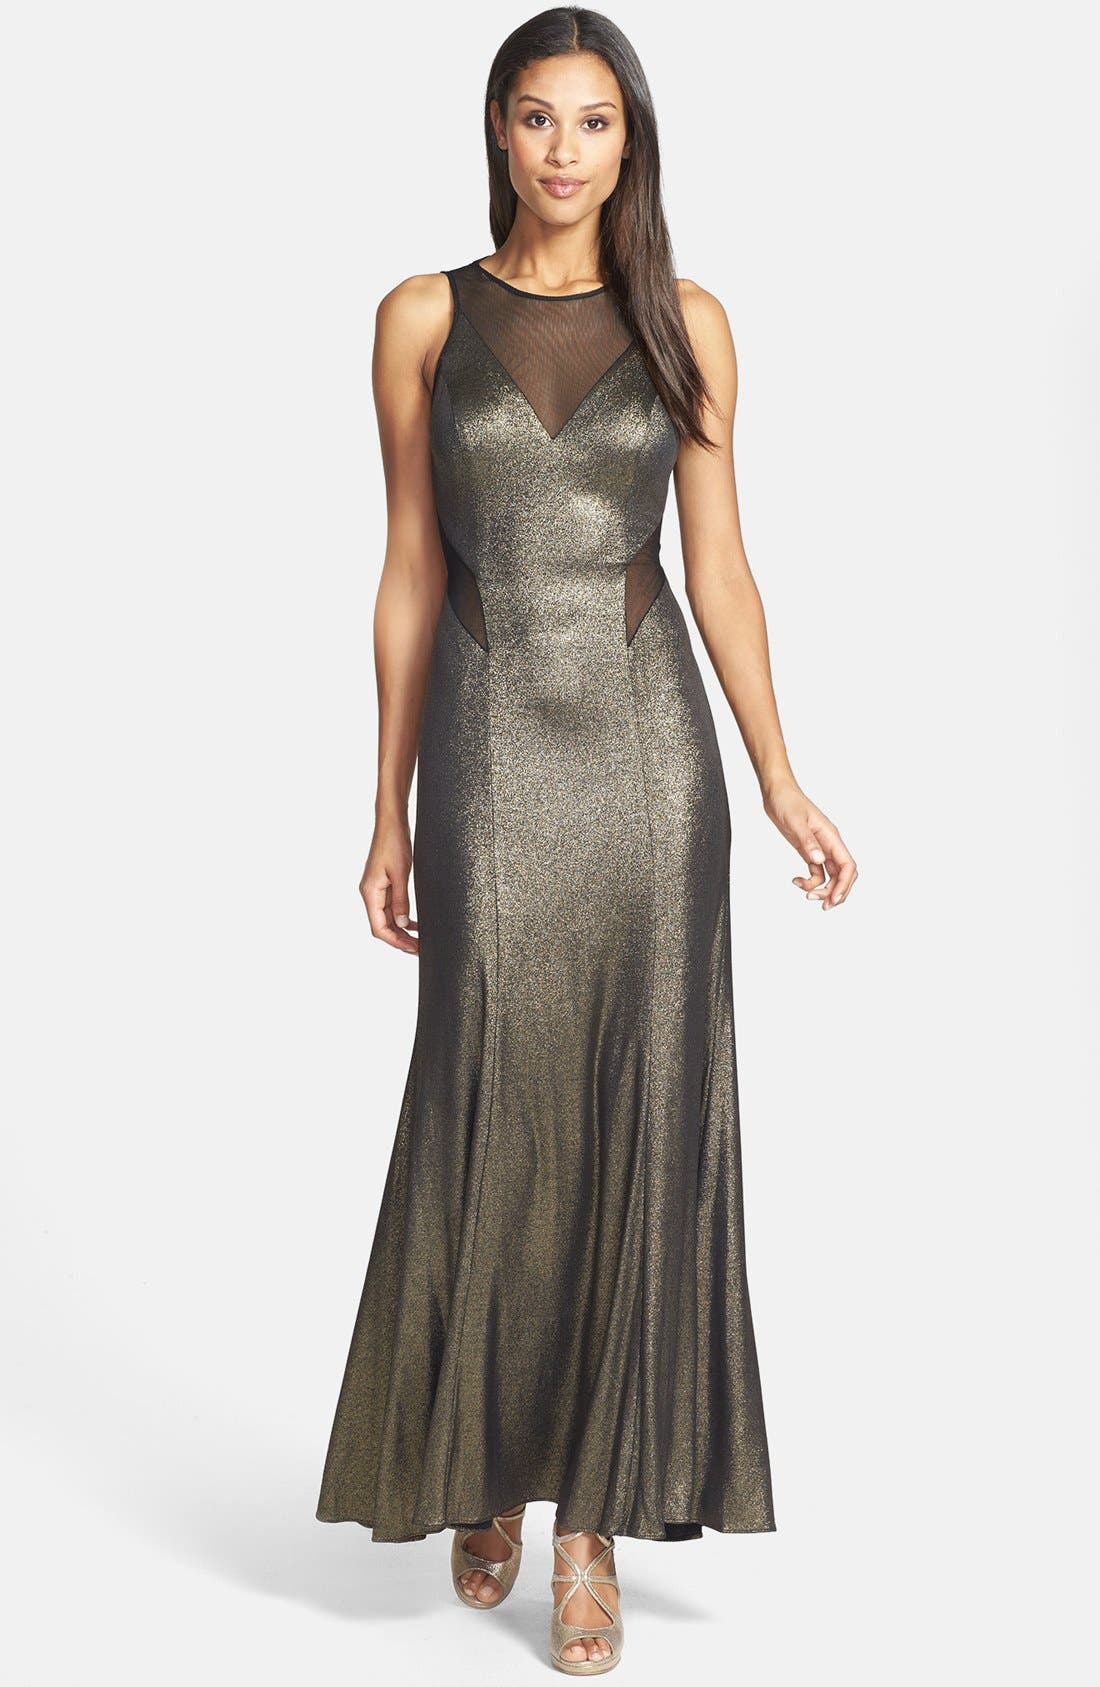 Alternate Image 1 Selected - Hailey by Adrianna Papell Illusion Cutout Metallic Gown